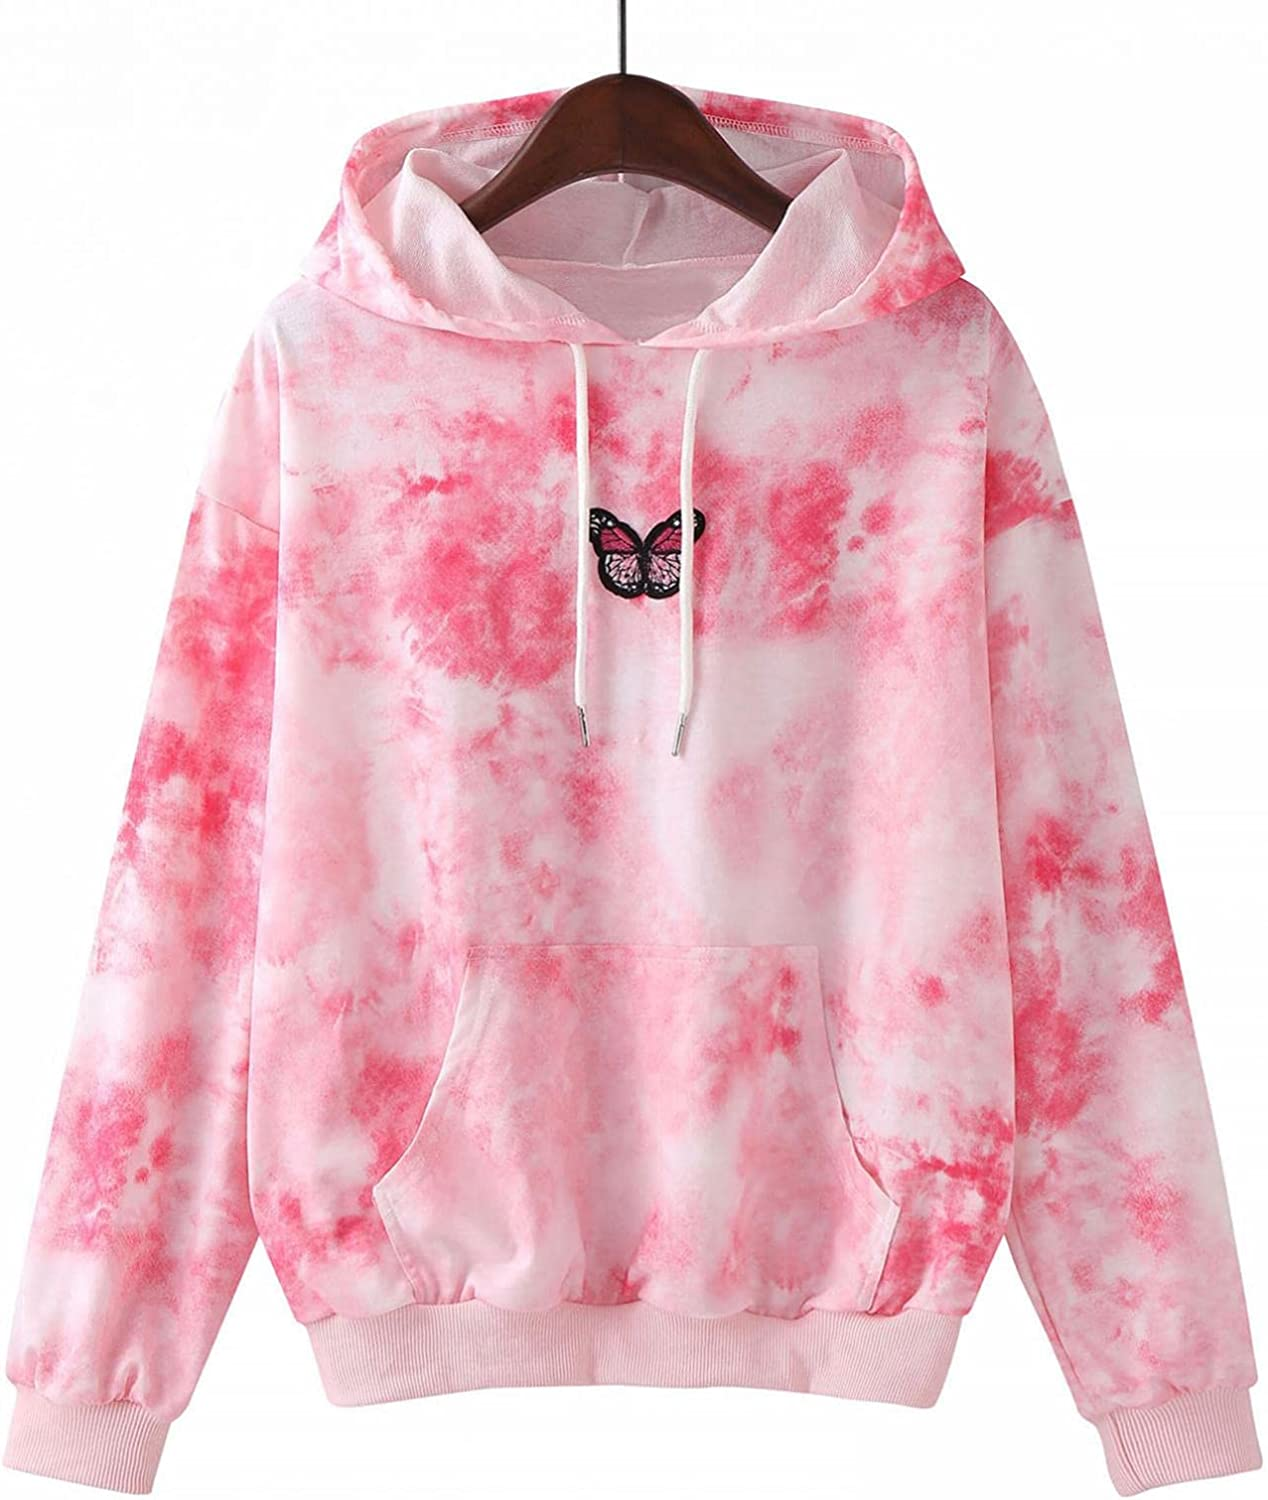 Hoodies for Women,Women's Fashion Hoodies & Sweatshirts Plus Size Butterfly Graphic Long Sleeve Drawstring Pullover